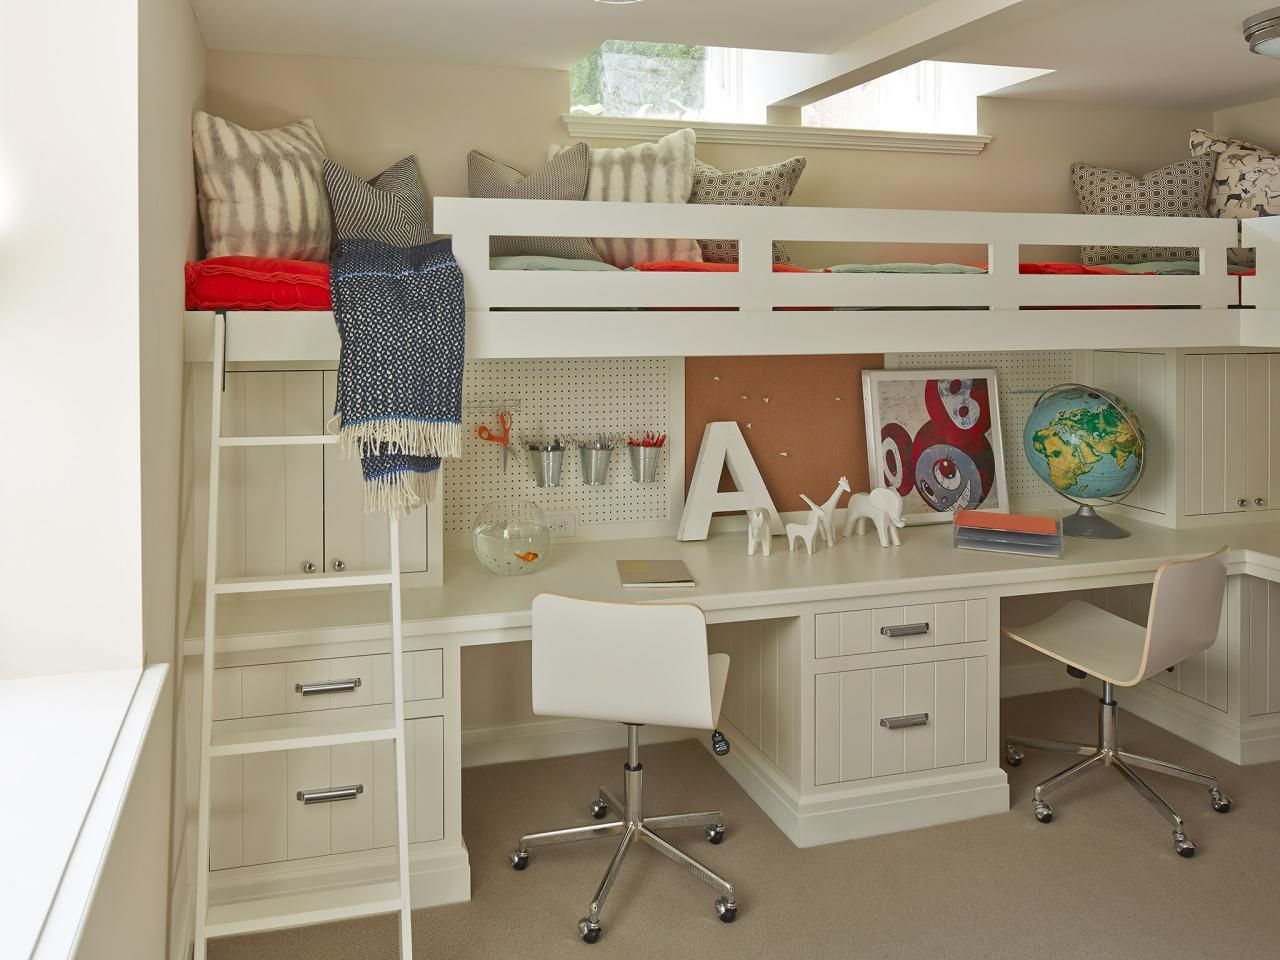 Home Office With Built In Desk And Loft Bunk Bed With Desk Bunk Beds Built In Bunk Bed Designs Bunk beds with built in desks